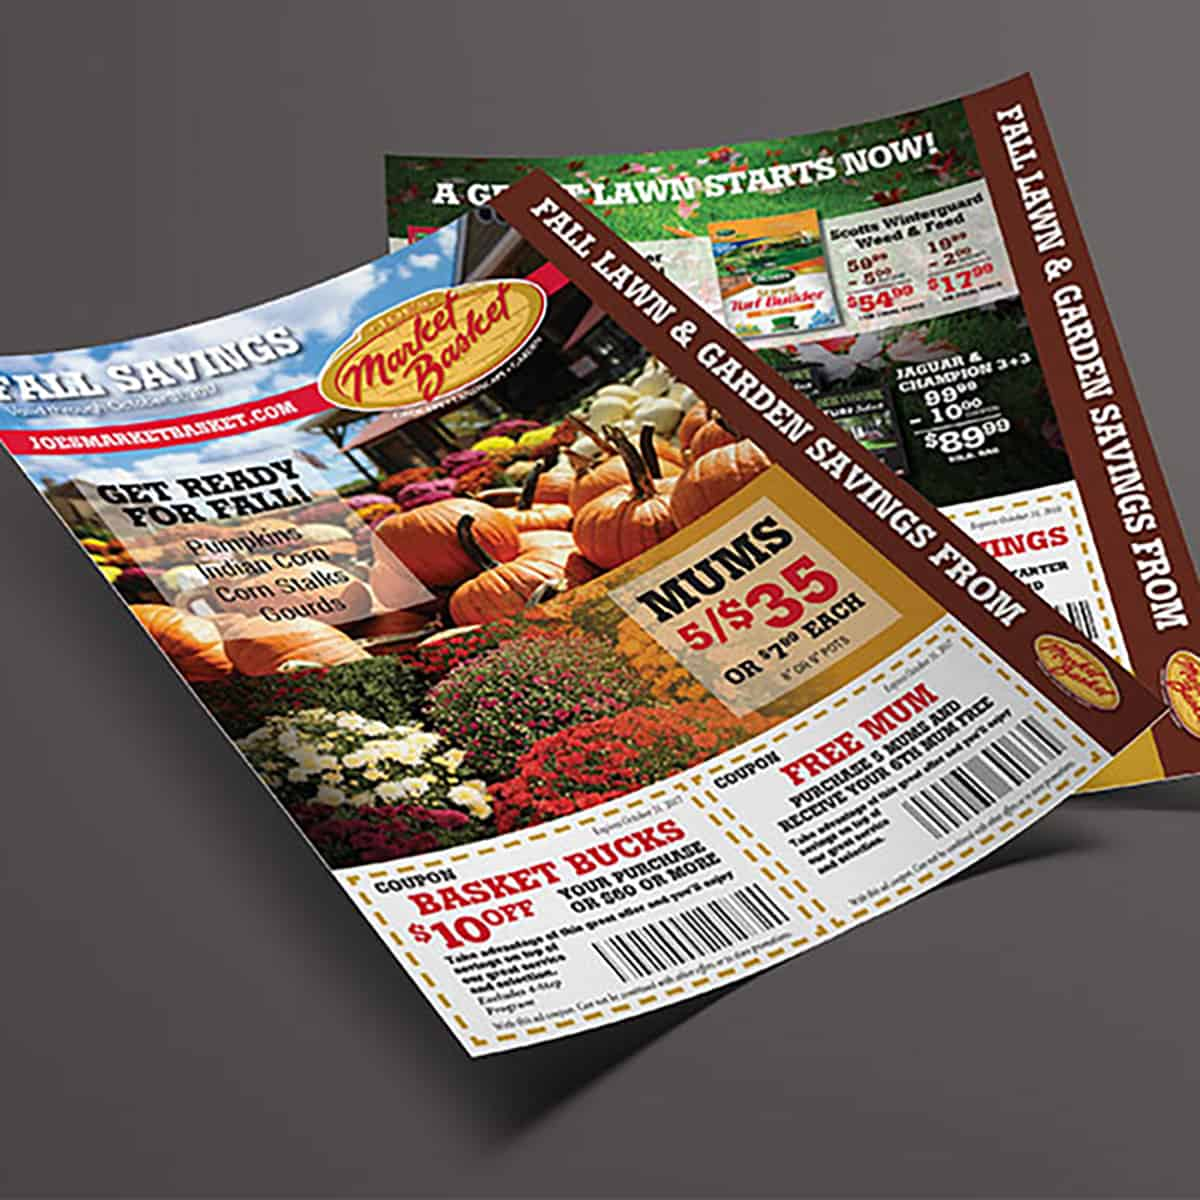 Joe's Market Basket quarterly flyer